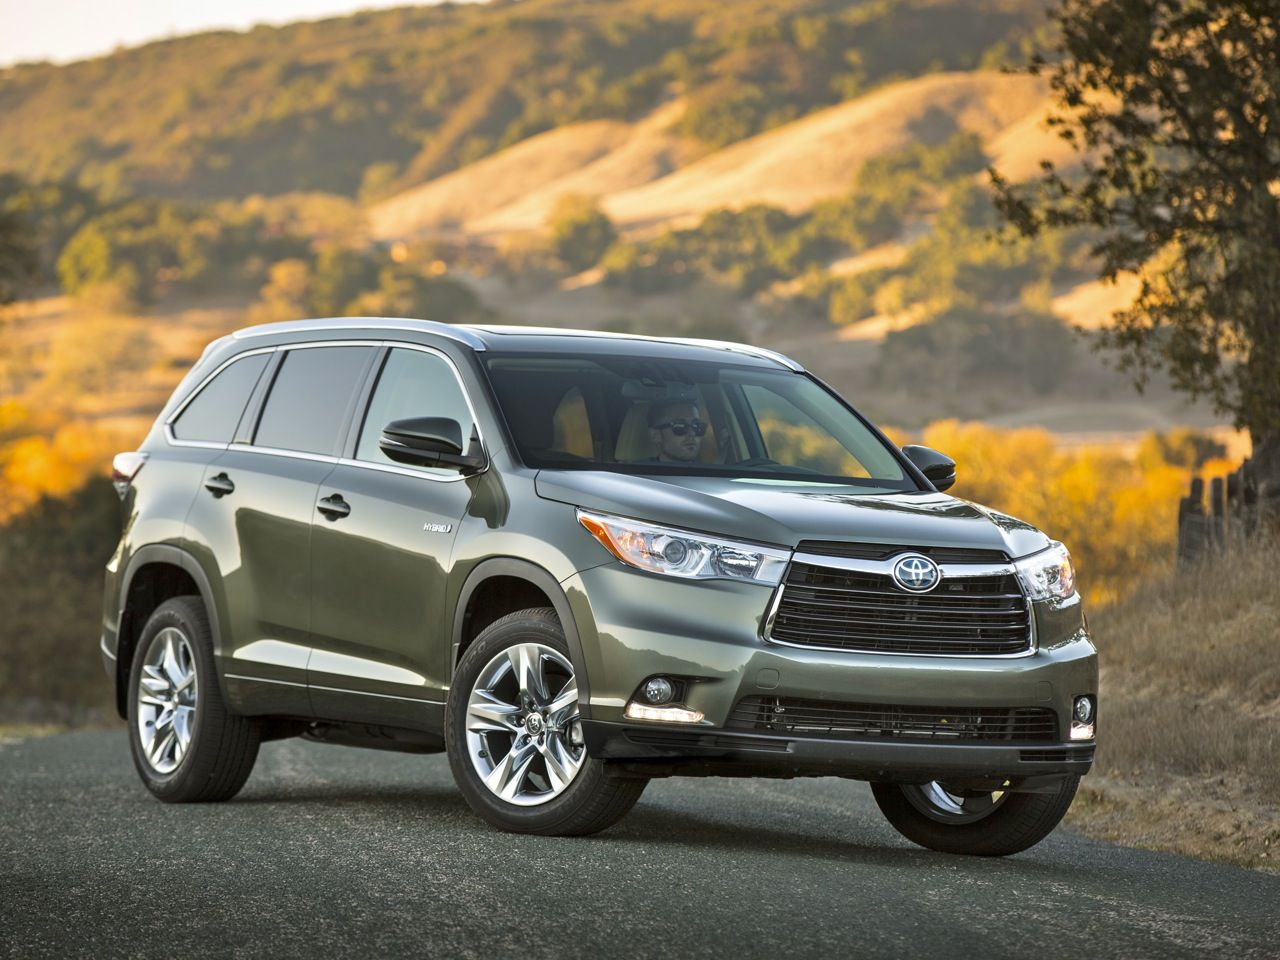 2014 Toyota Highlander Review Bigger And Better Toyota Highlander Hybrid Toyota Suv Fuel Efficient Suv